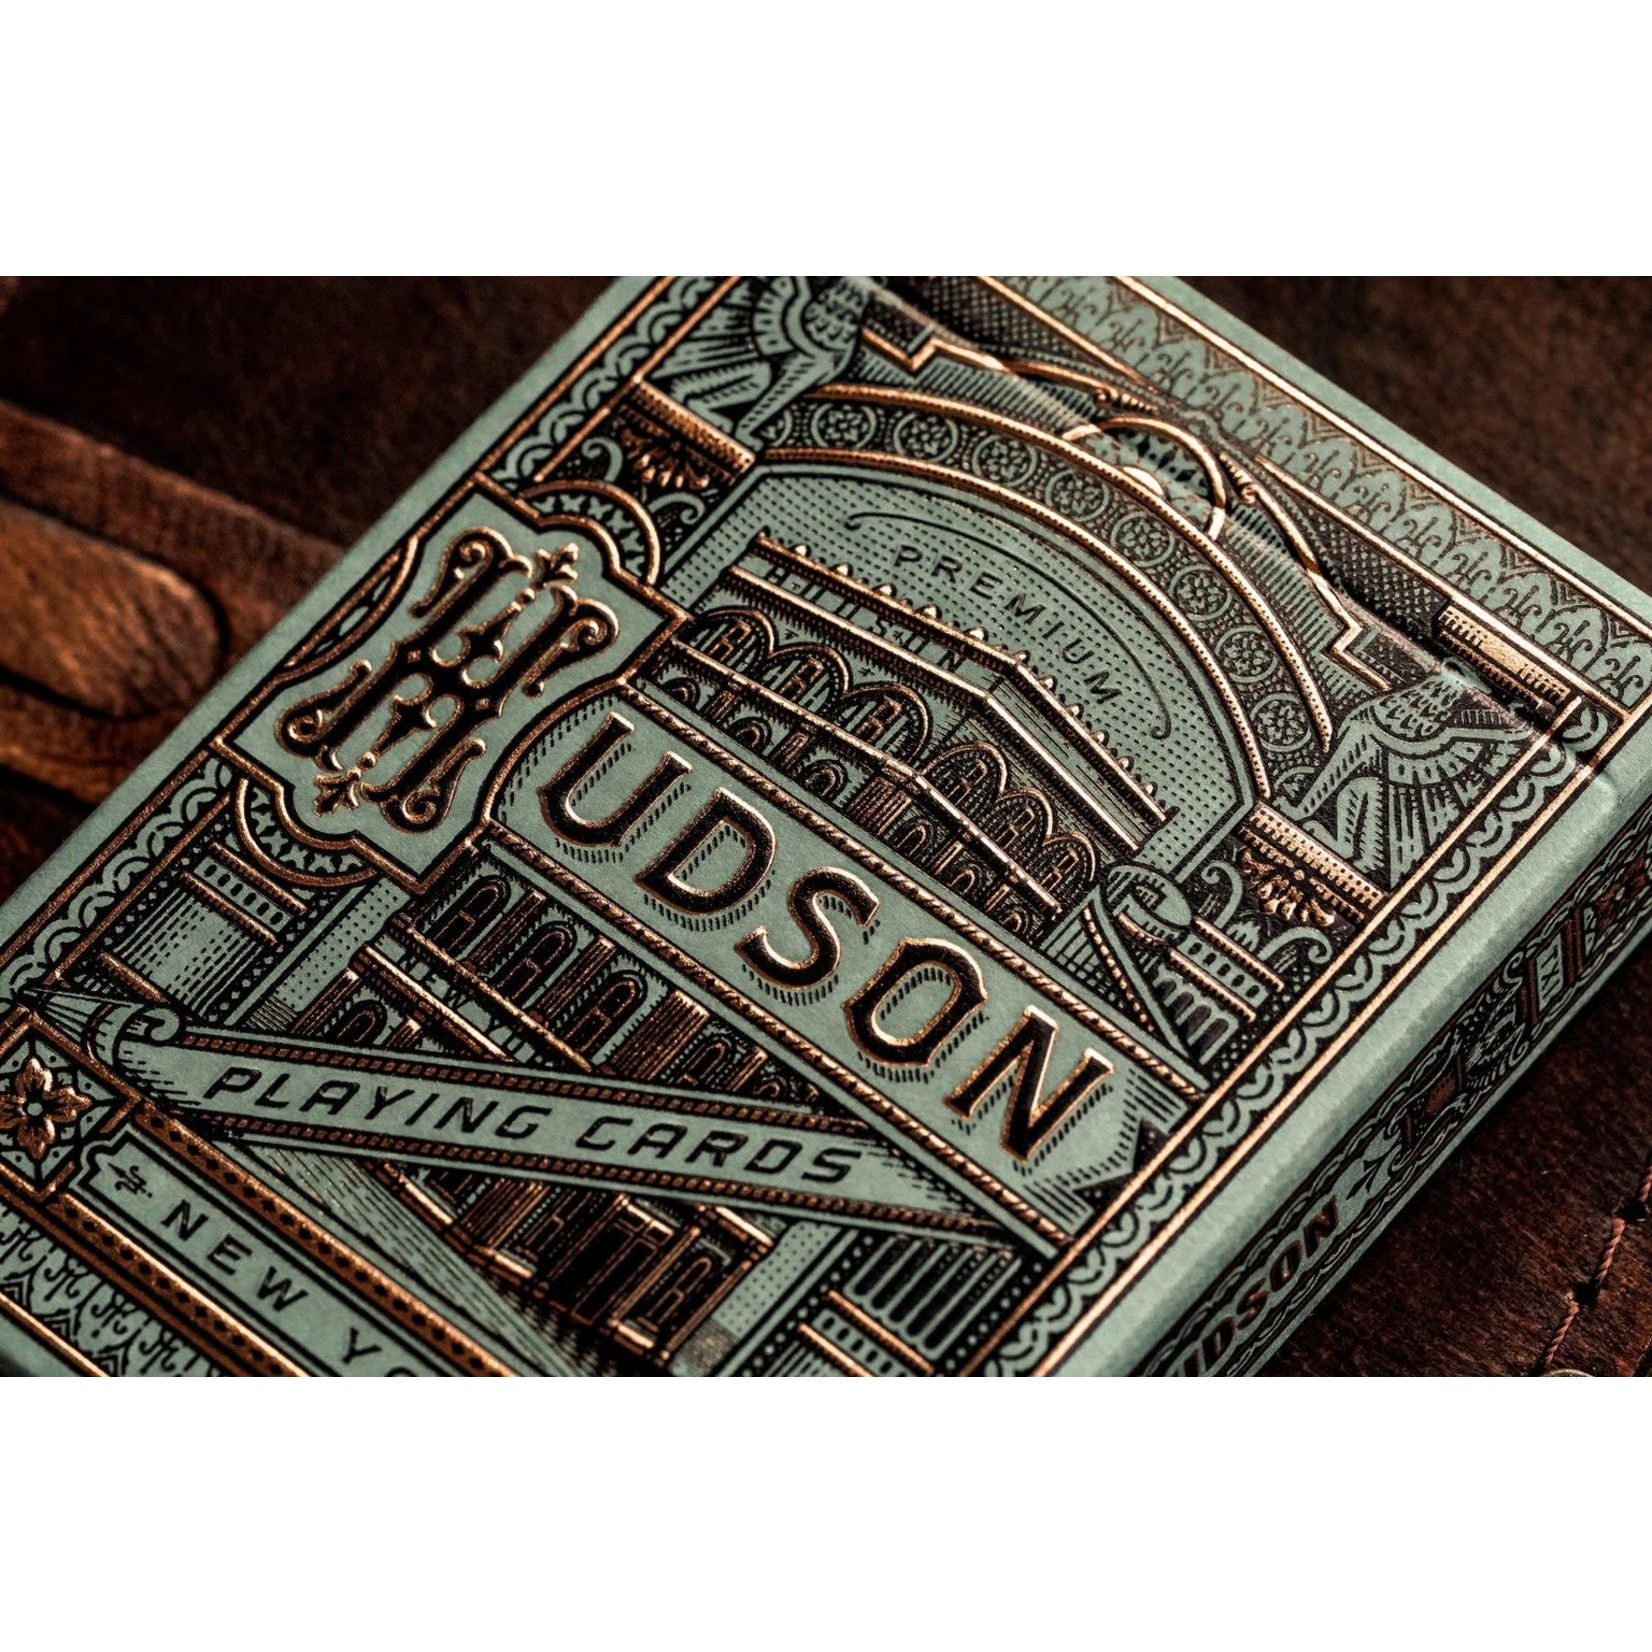 theory11 Cards T11 Hudson